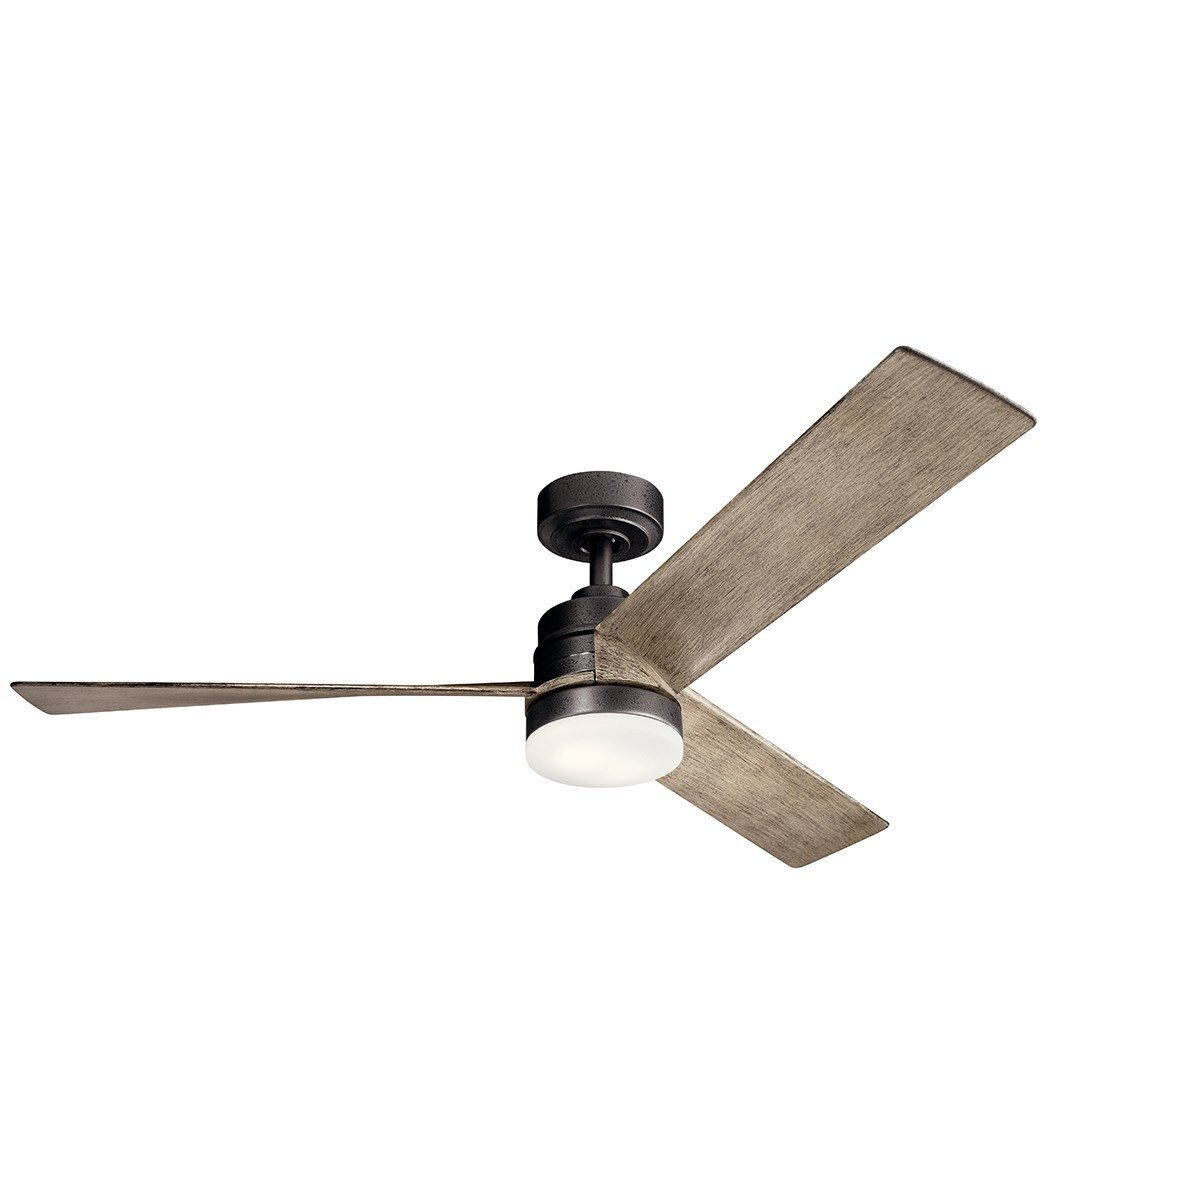 "Master Bedroom Ceiling Fans Inspirational Spyn Led 52"" Fan Anvil Iron"